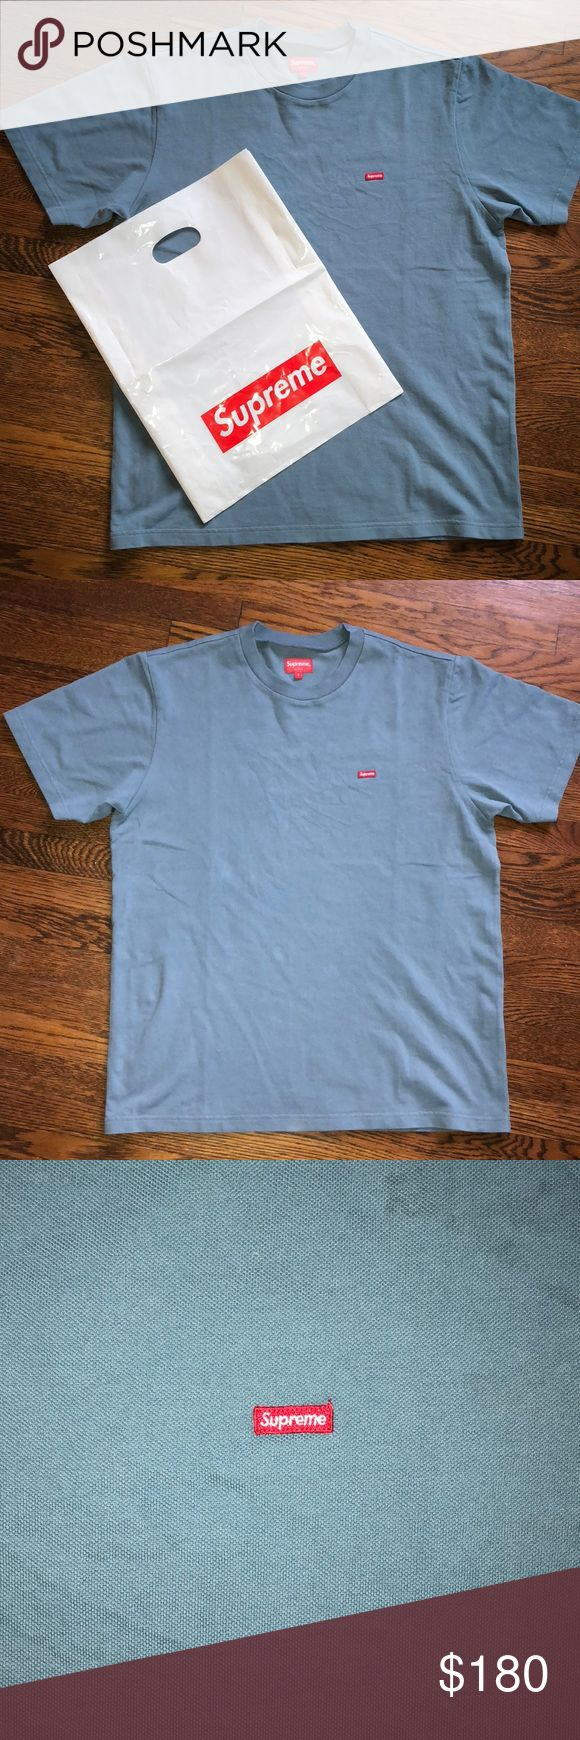 Authentic NWOT Supreme Shirt Authentic Supreme Shirt NWOT Size Large Bag included Supreme Shirts Tees - Short Sleeve